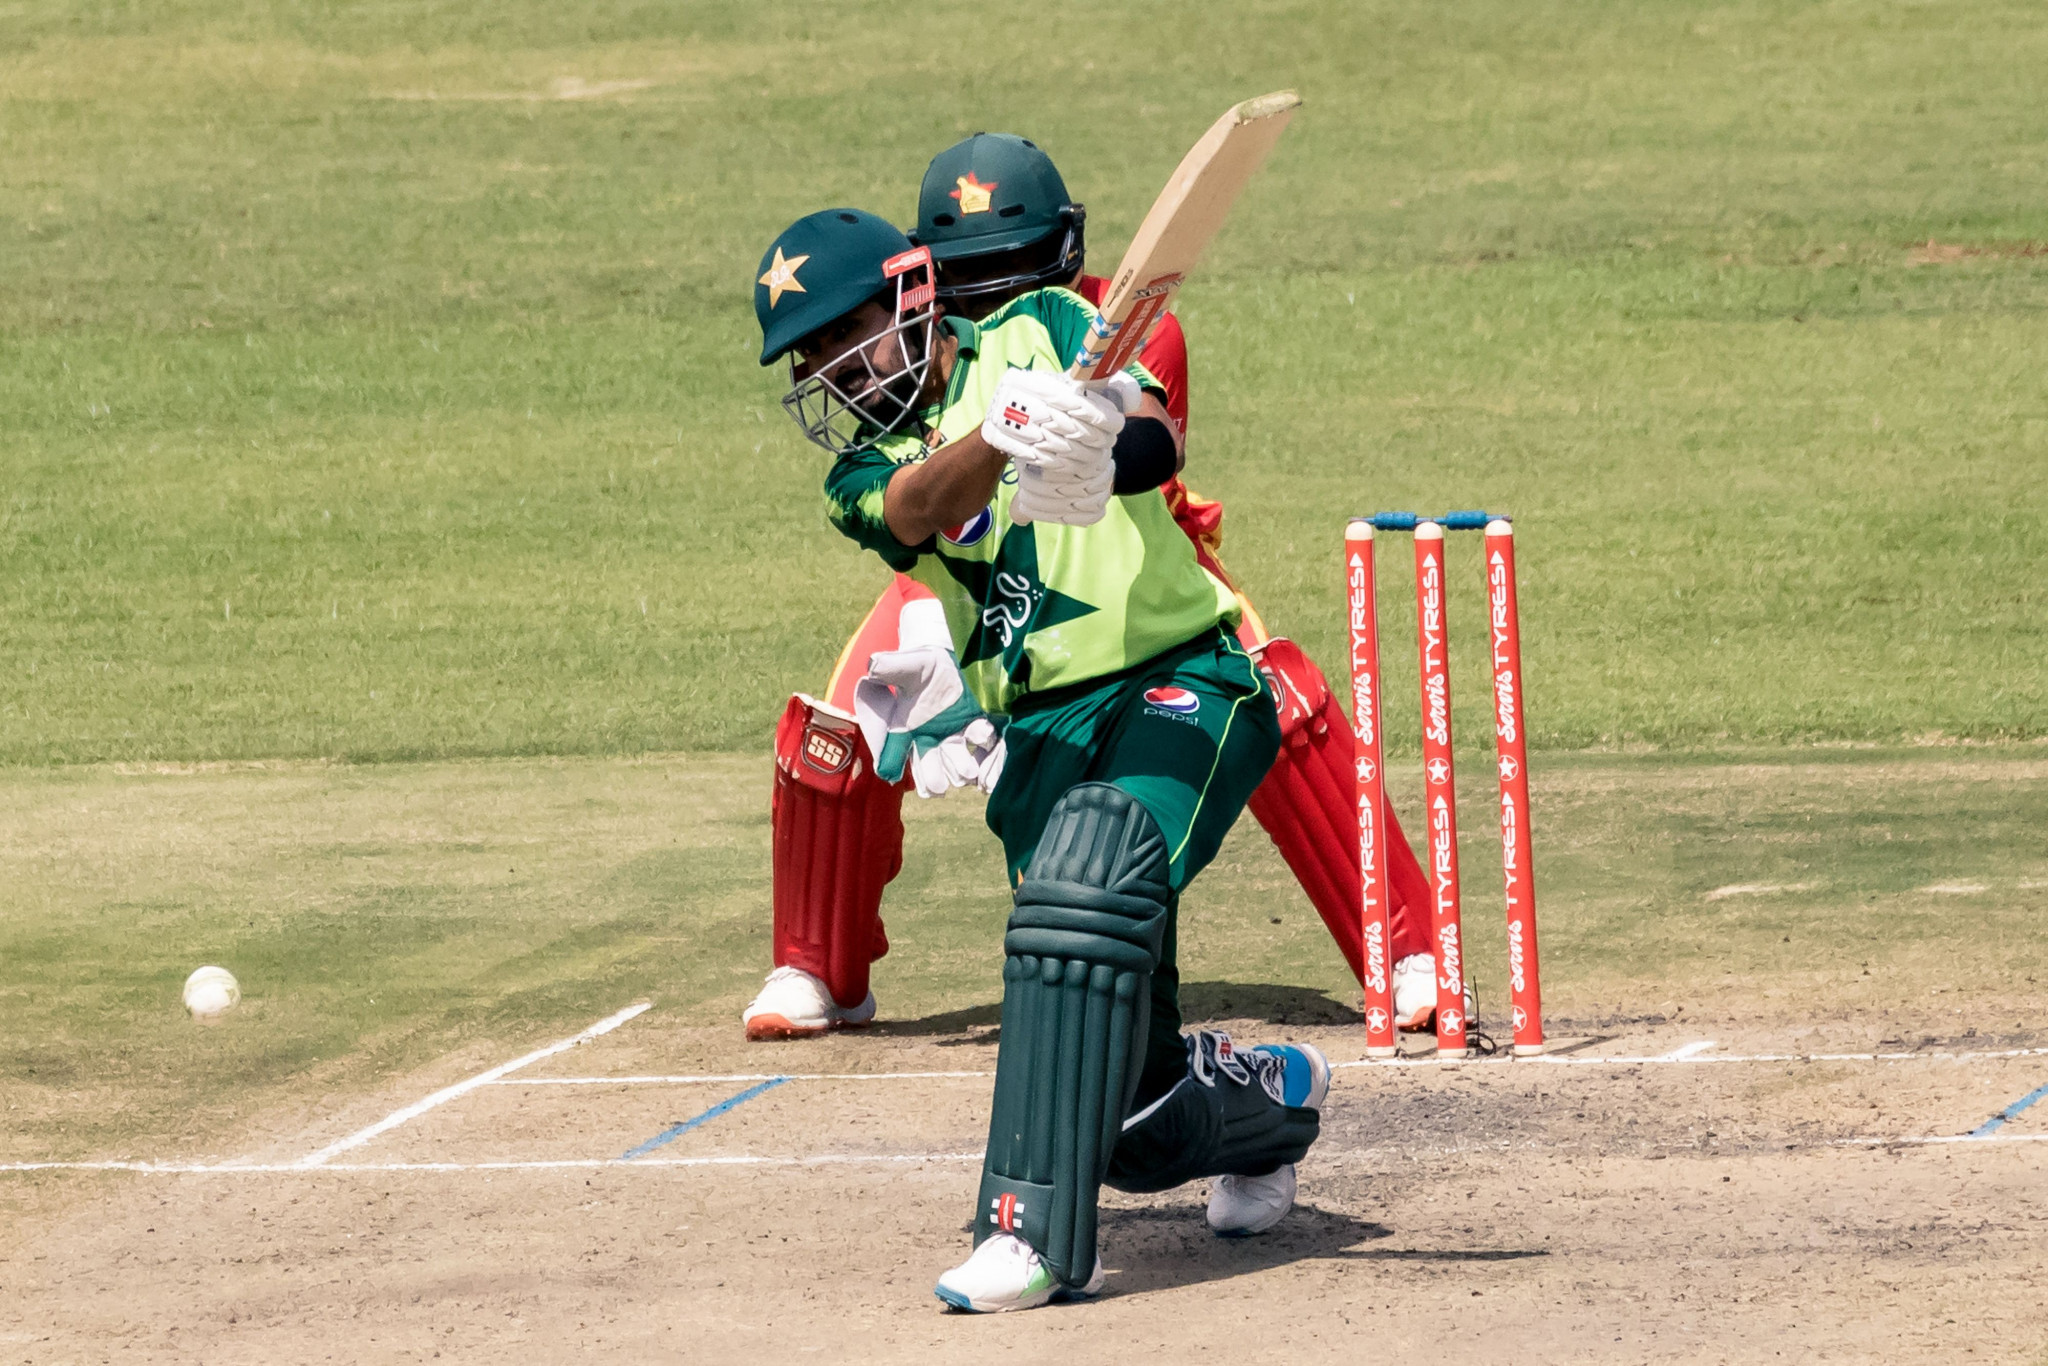 Babar Azam will face Pakistan teammate Fakhar Zaman and Nepal's Kushal Bhurtel in the battle to win the men's ICC Player of the Month award for April ©Getty Images